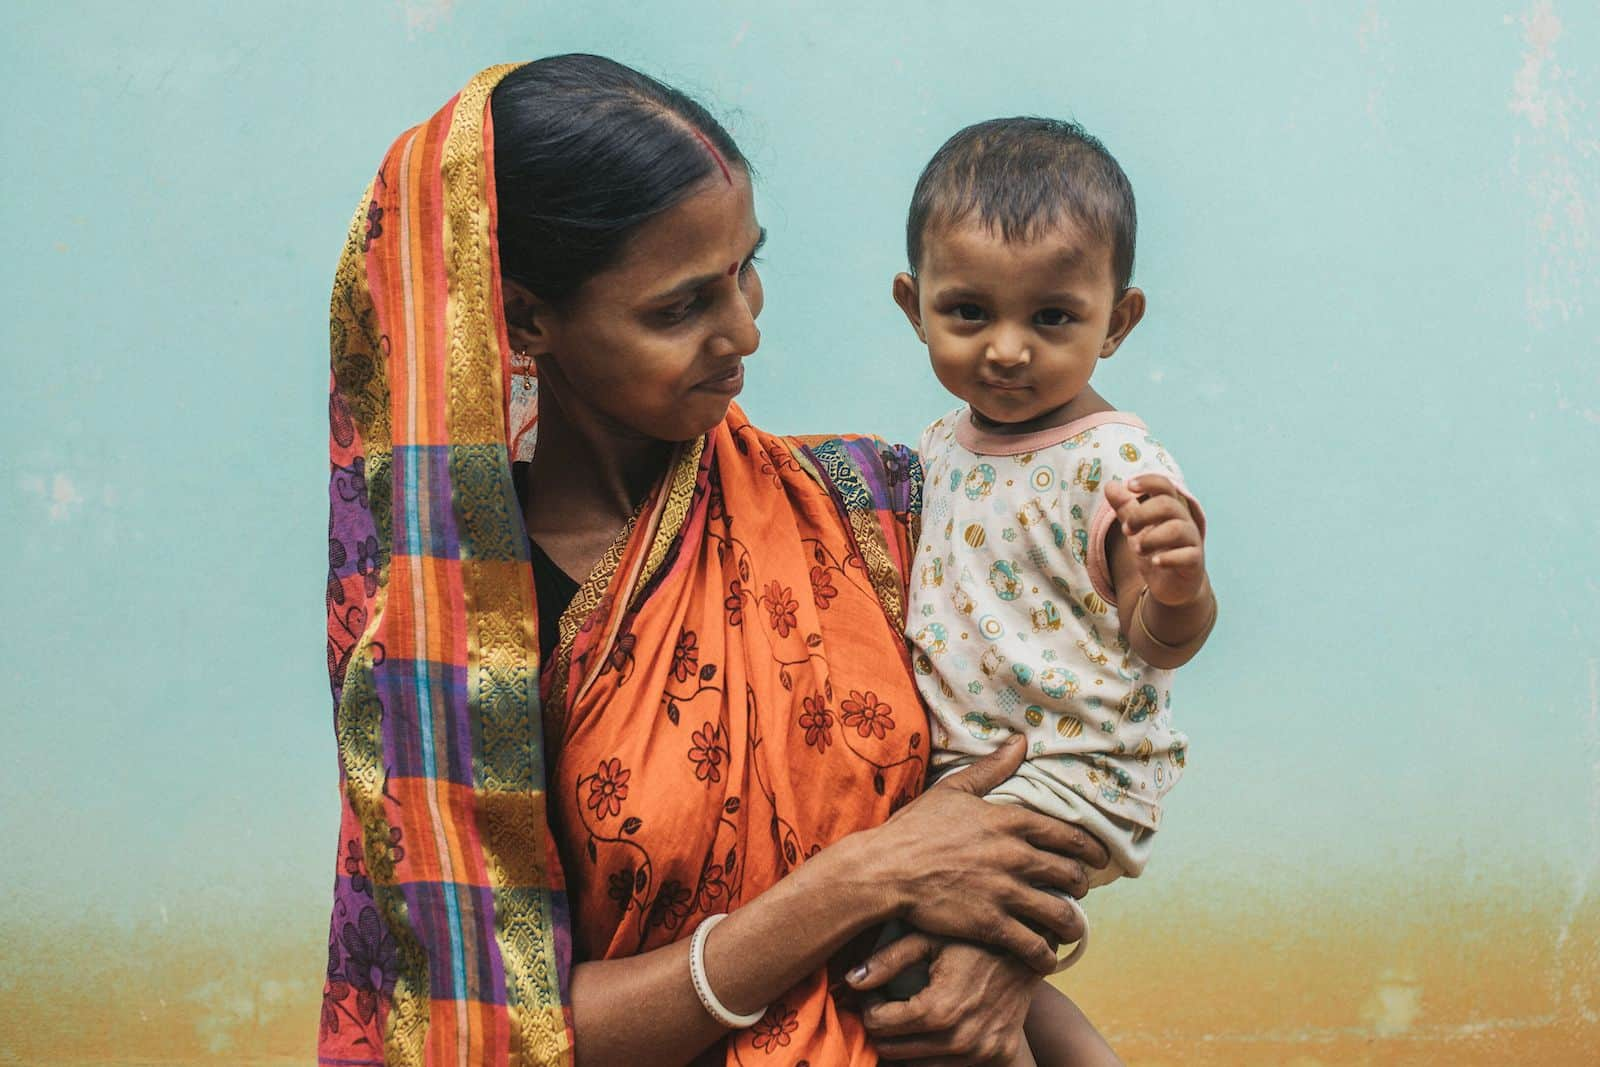 A woman in a sari holds a baby.